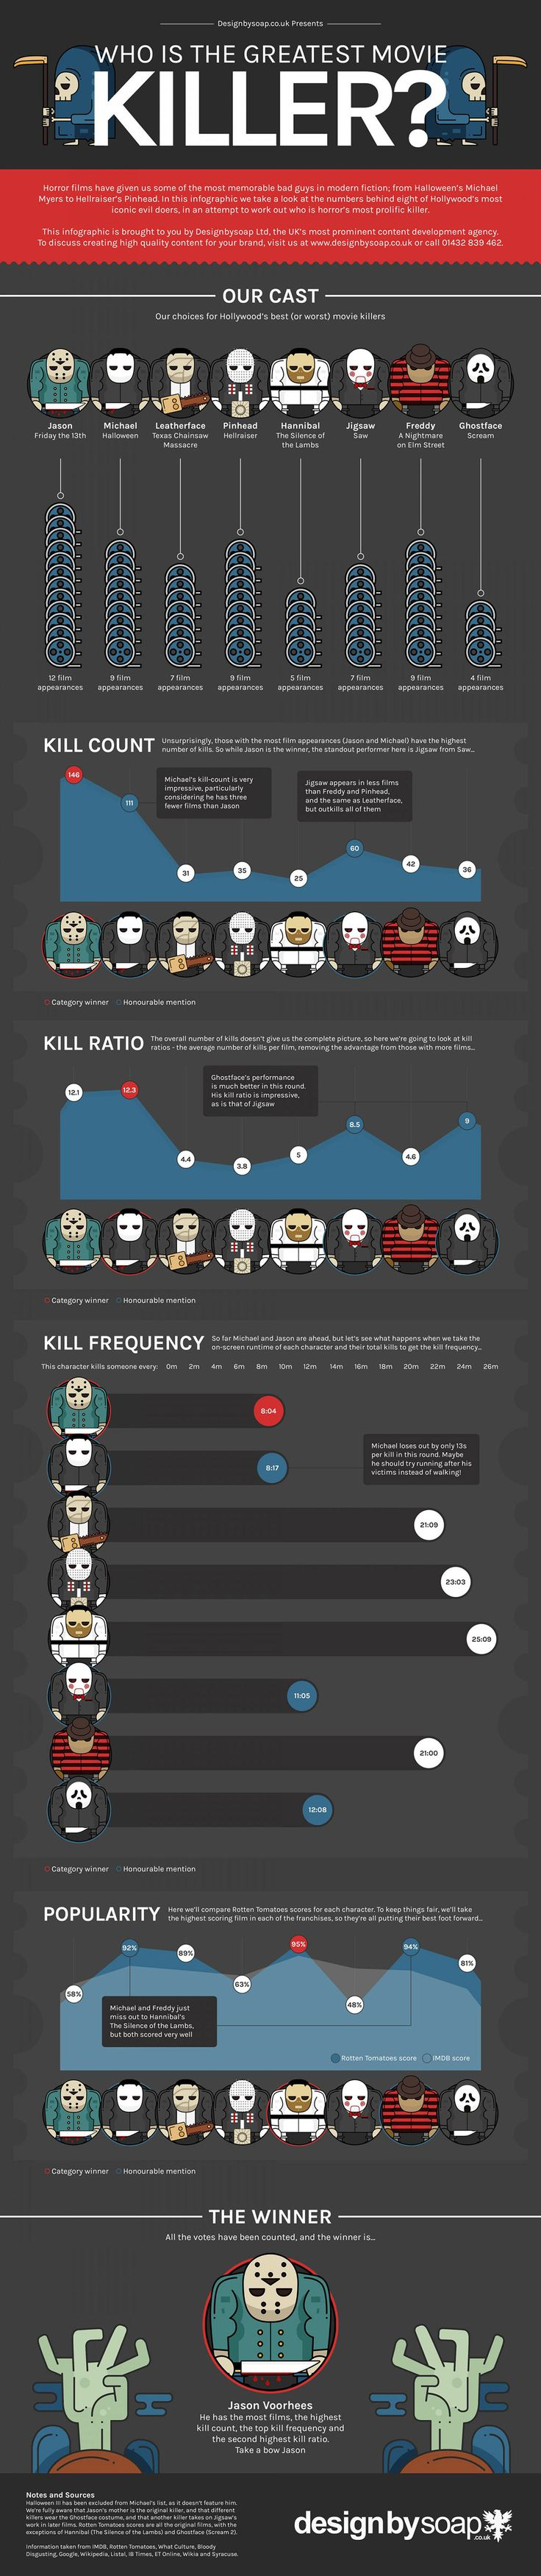 Who is Hollywood Best or Worst Movie Killers Infographic. Topic: Horro films, killer, Jason Friday the 13th, Freddy Krueger of A Nightmare on Elm Street, Hannibal, Jigsaw, Leatherface Texas Chainsaw Massacre, Ghostface of Scream, slasher film.